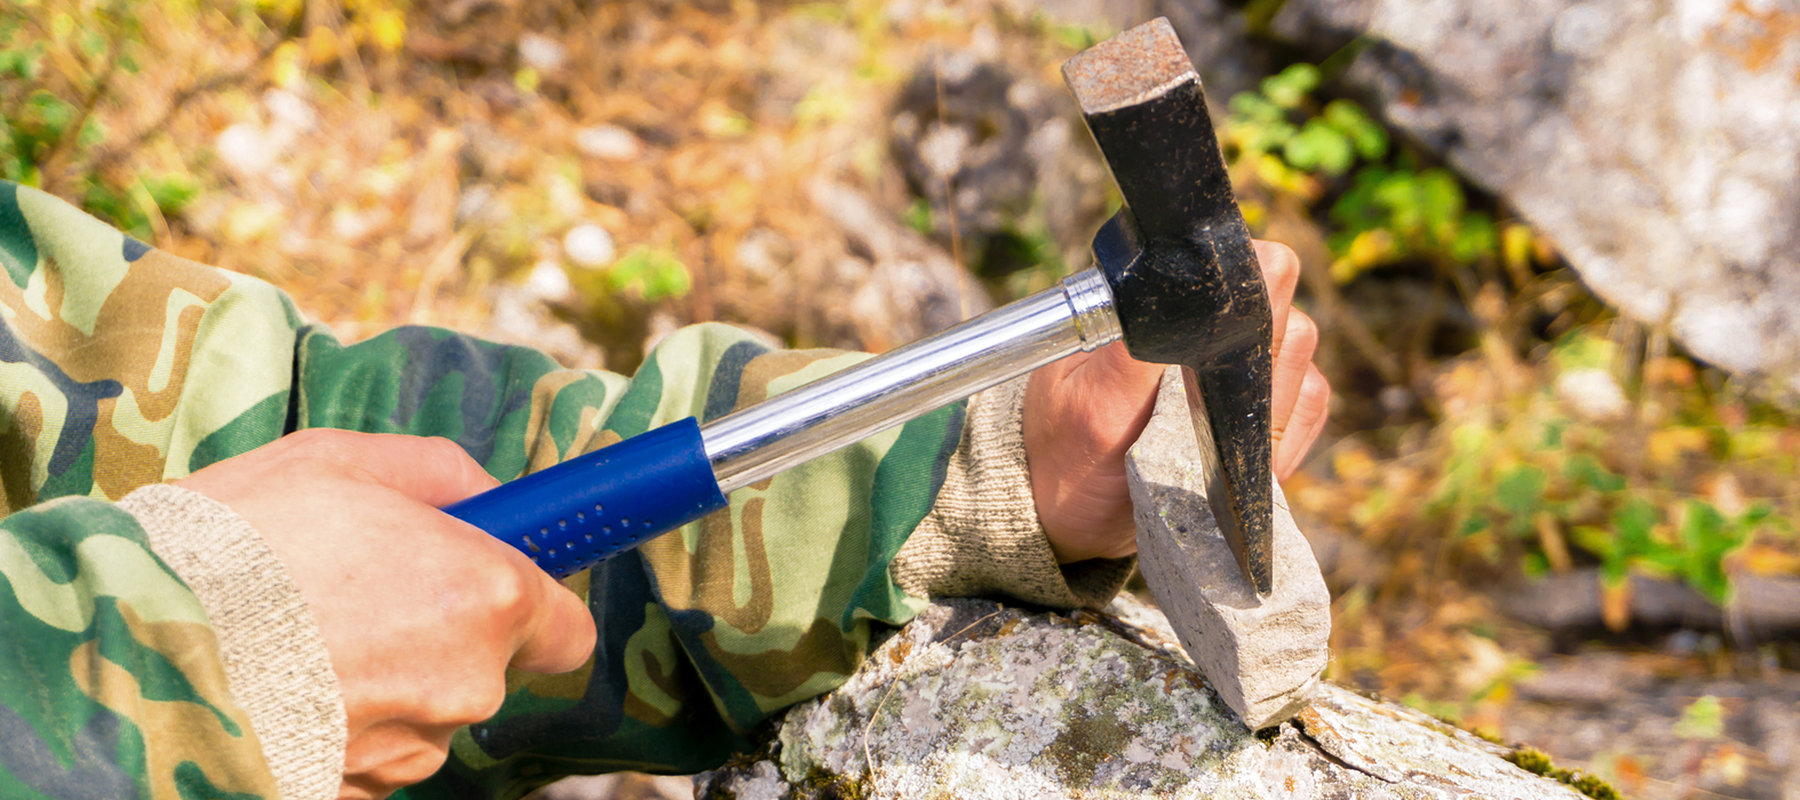 person using a hammer to break open a rock